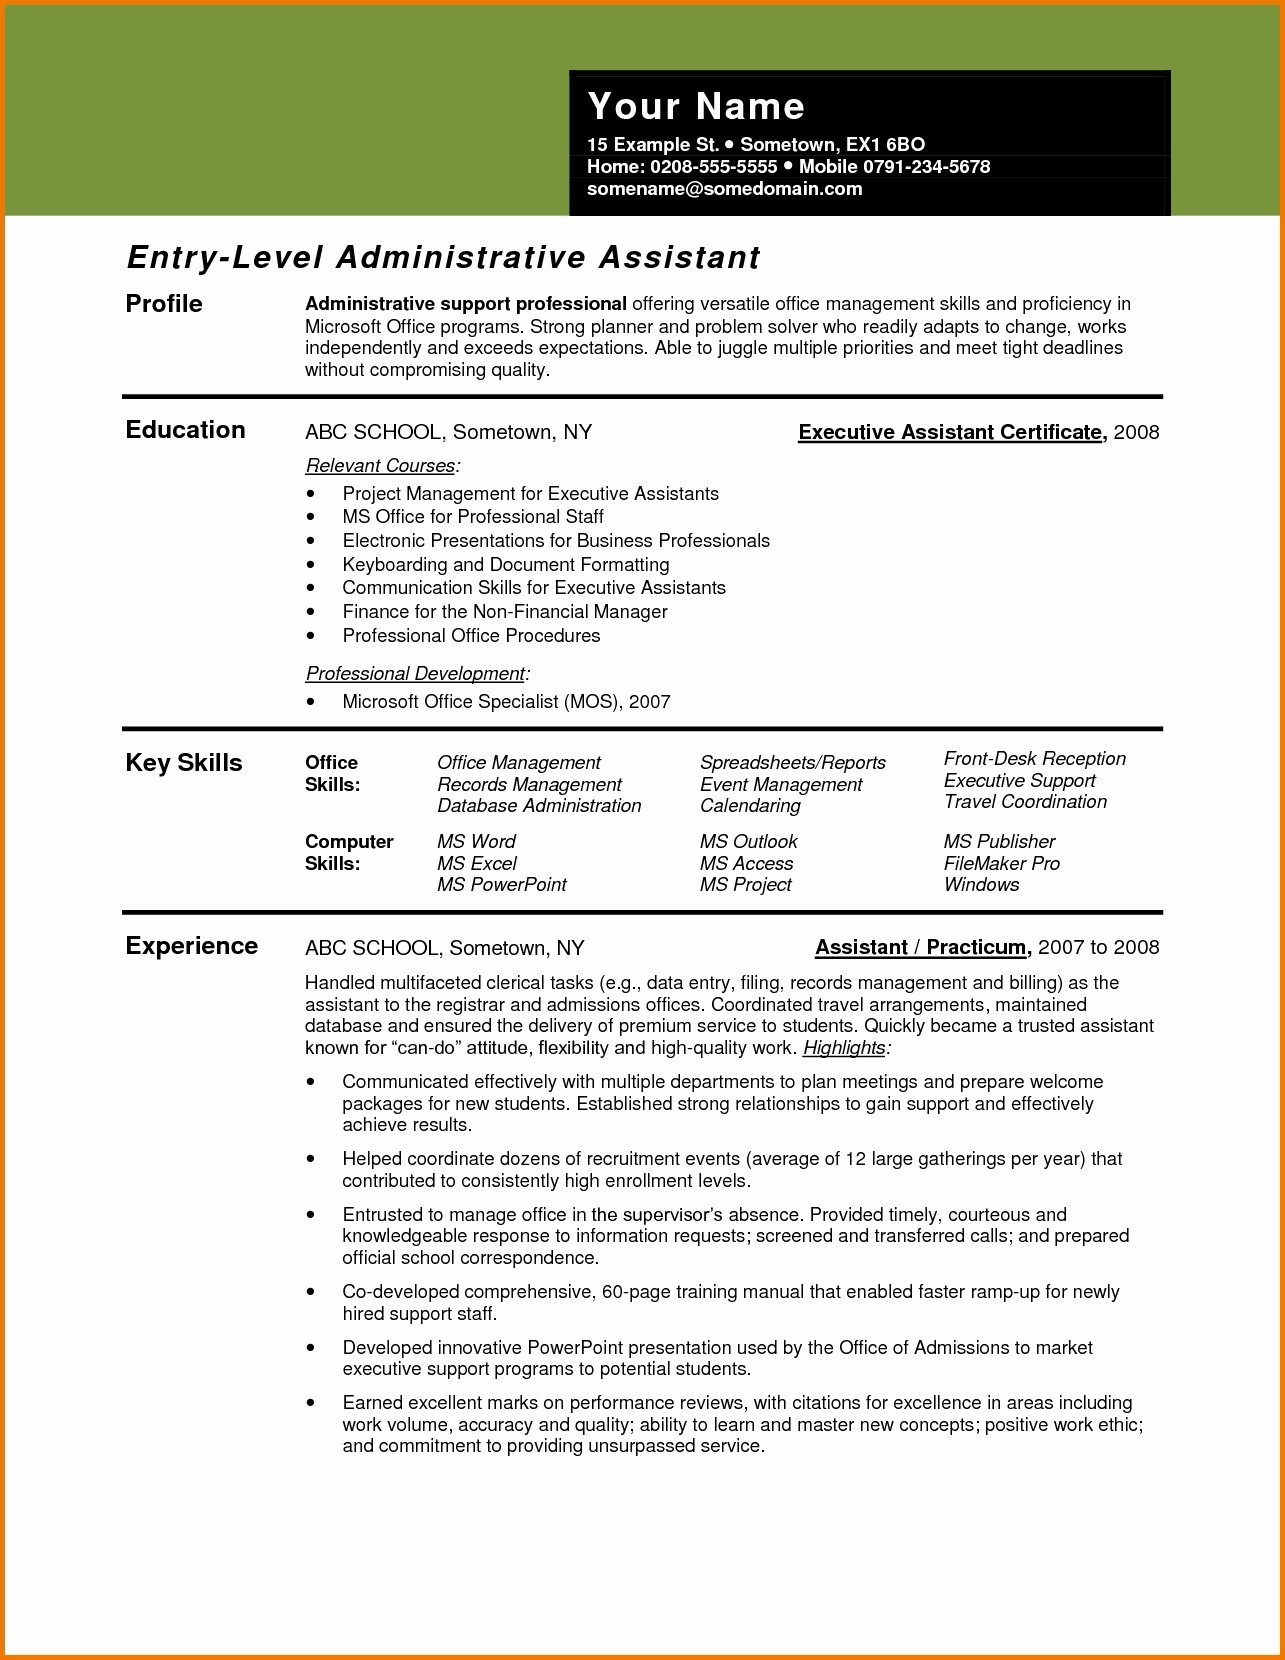 Hr Skills for Resume - Hr assistant Resume Beautiful Resume Template Executive assistant